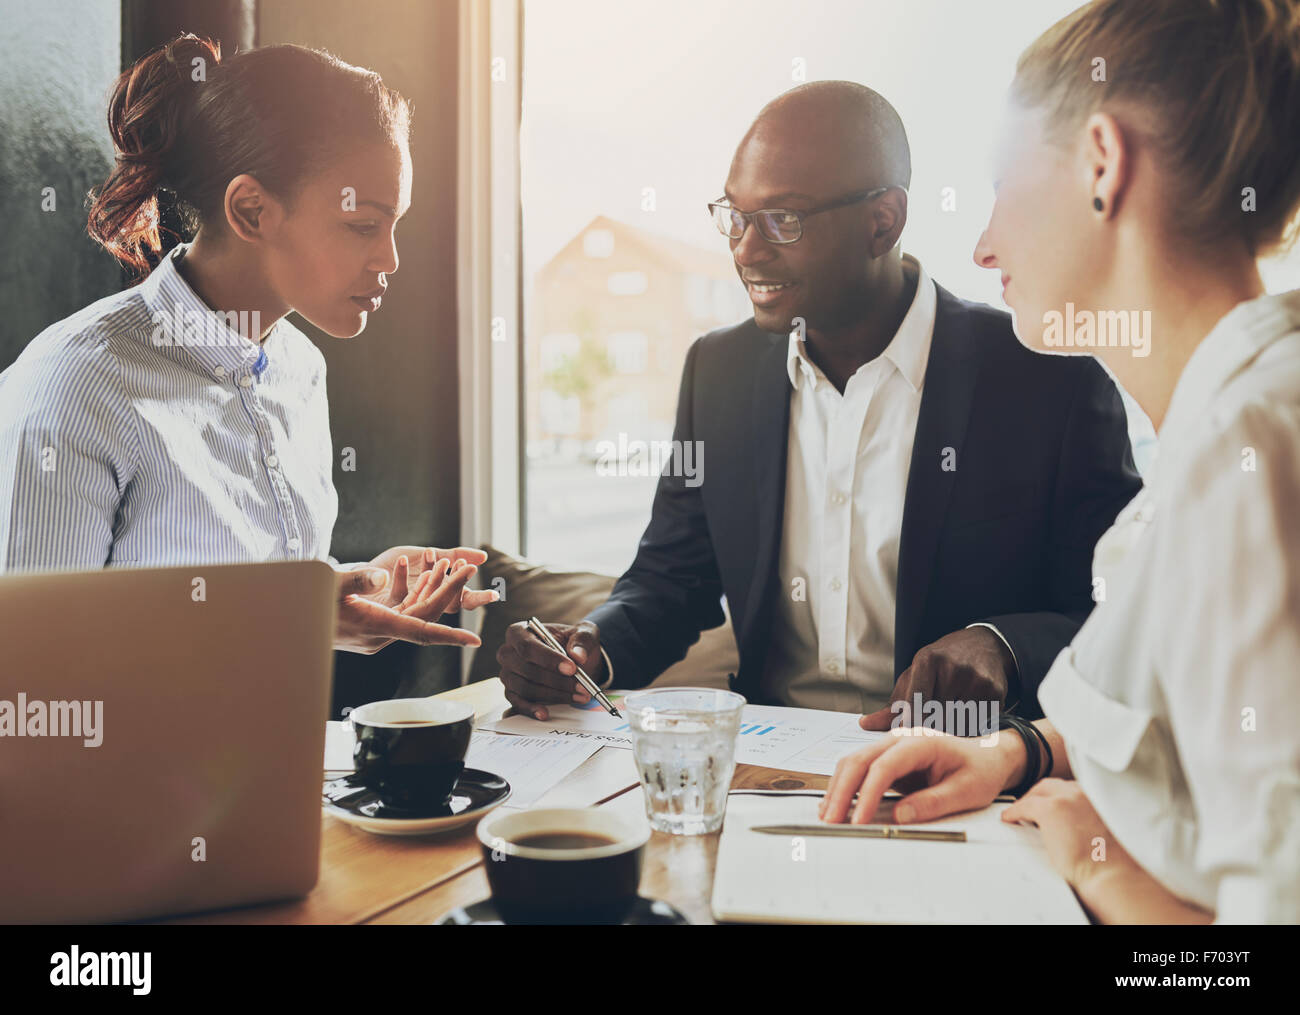 Multi ethnic business people, entrepreneur, business, small business concept - Stock Image